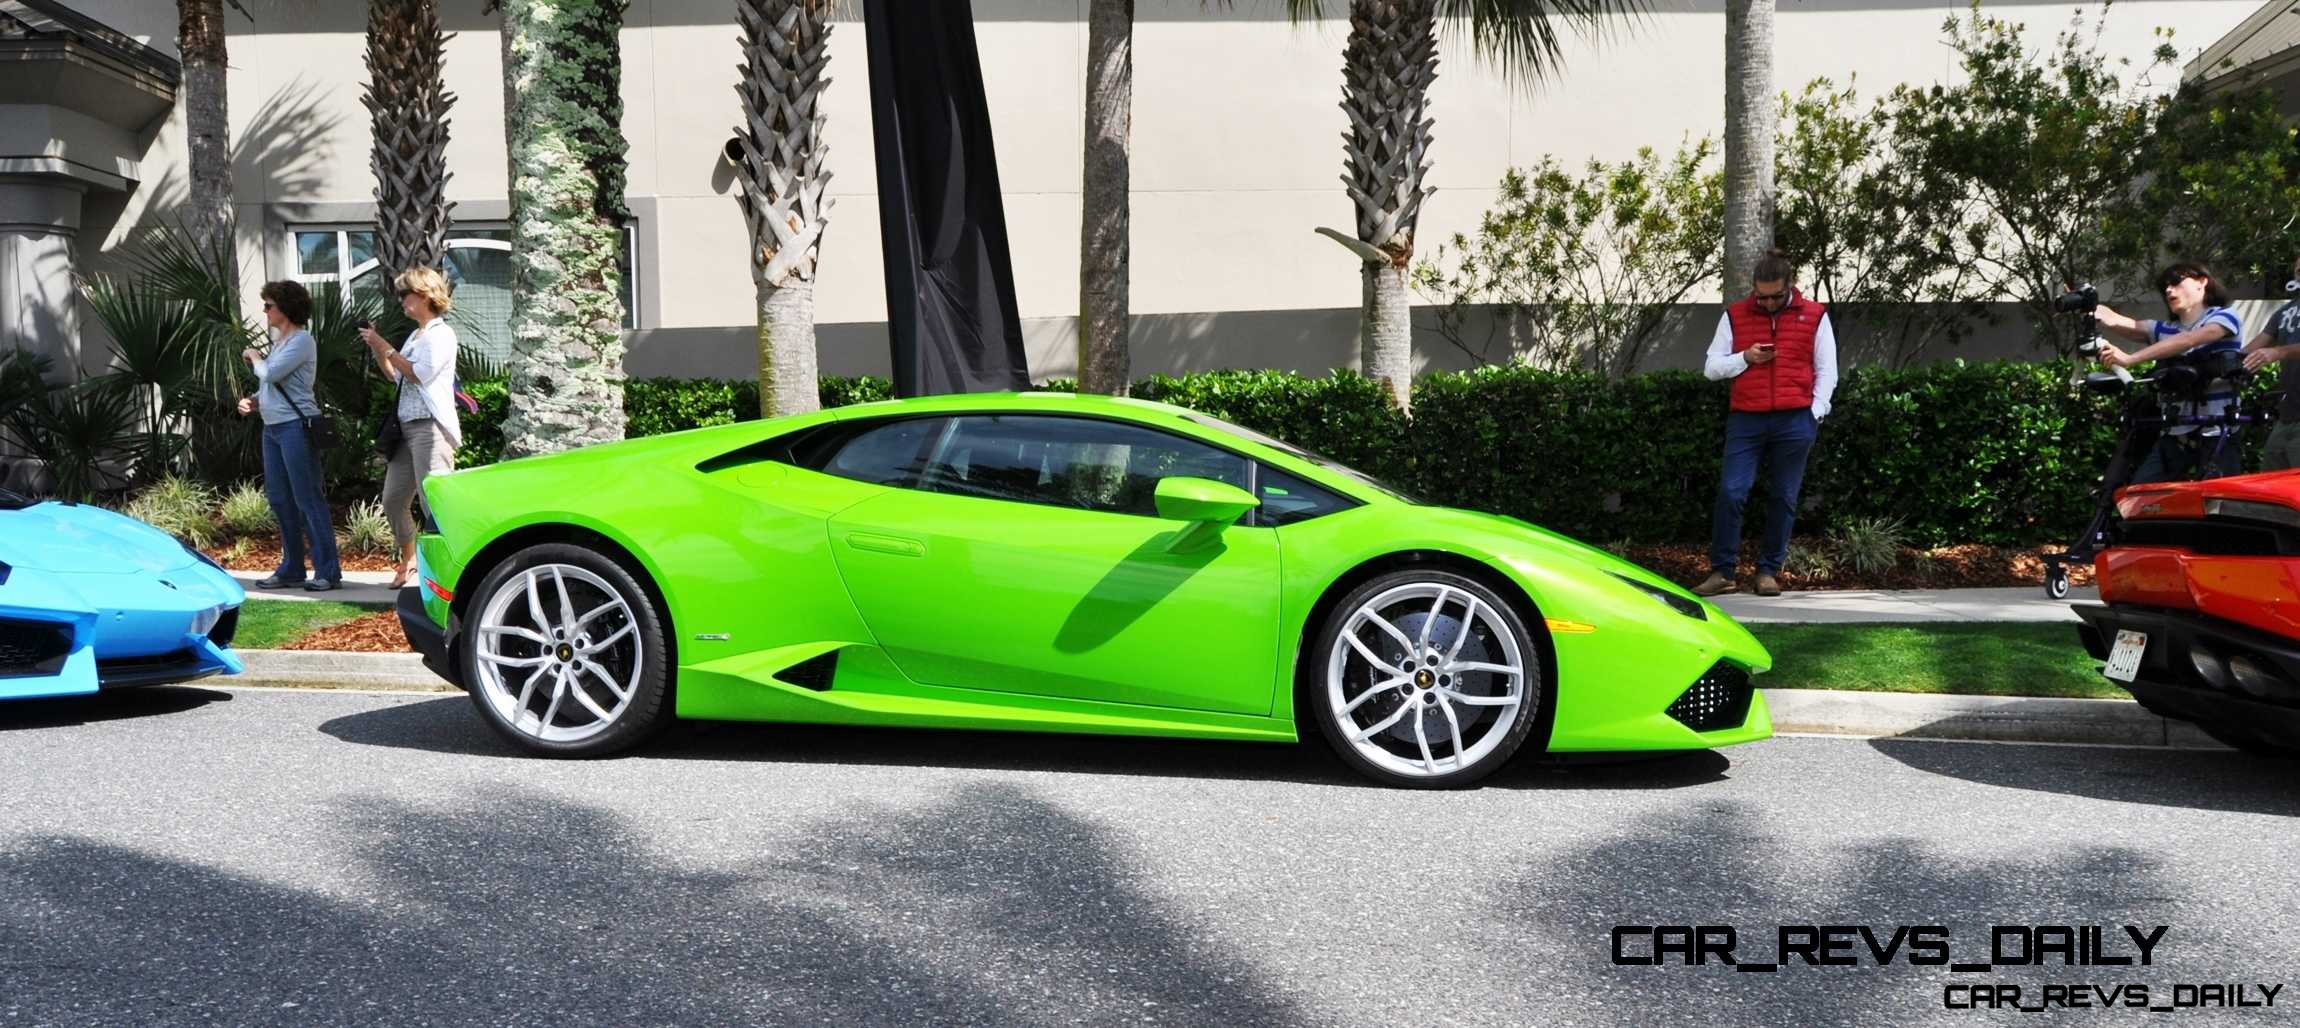 Amelia Island - 2015 Lanborghini HURACAN Verde Mantis in 50 New Photos 33